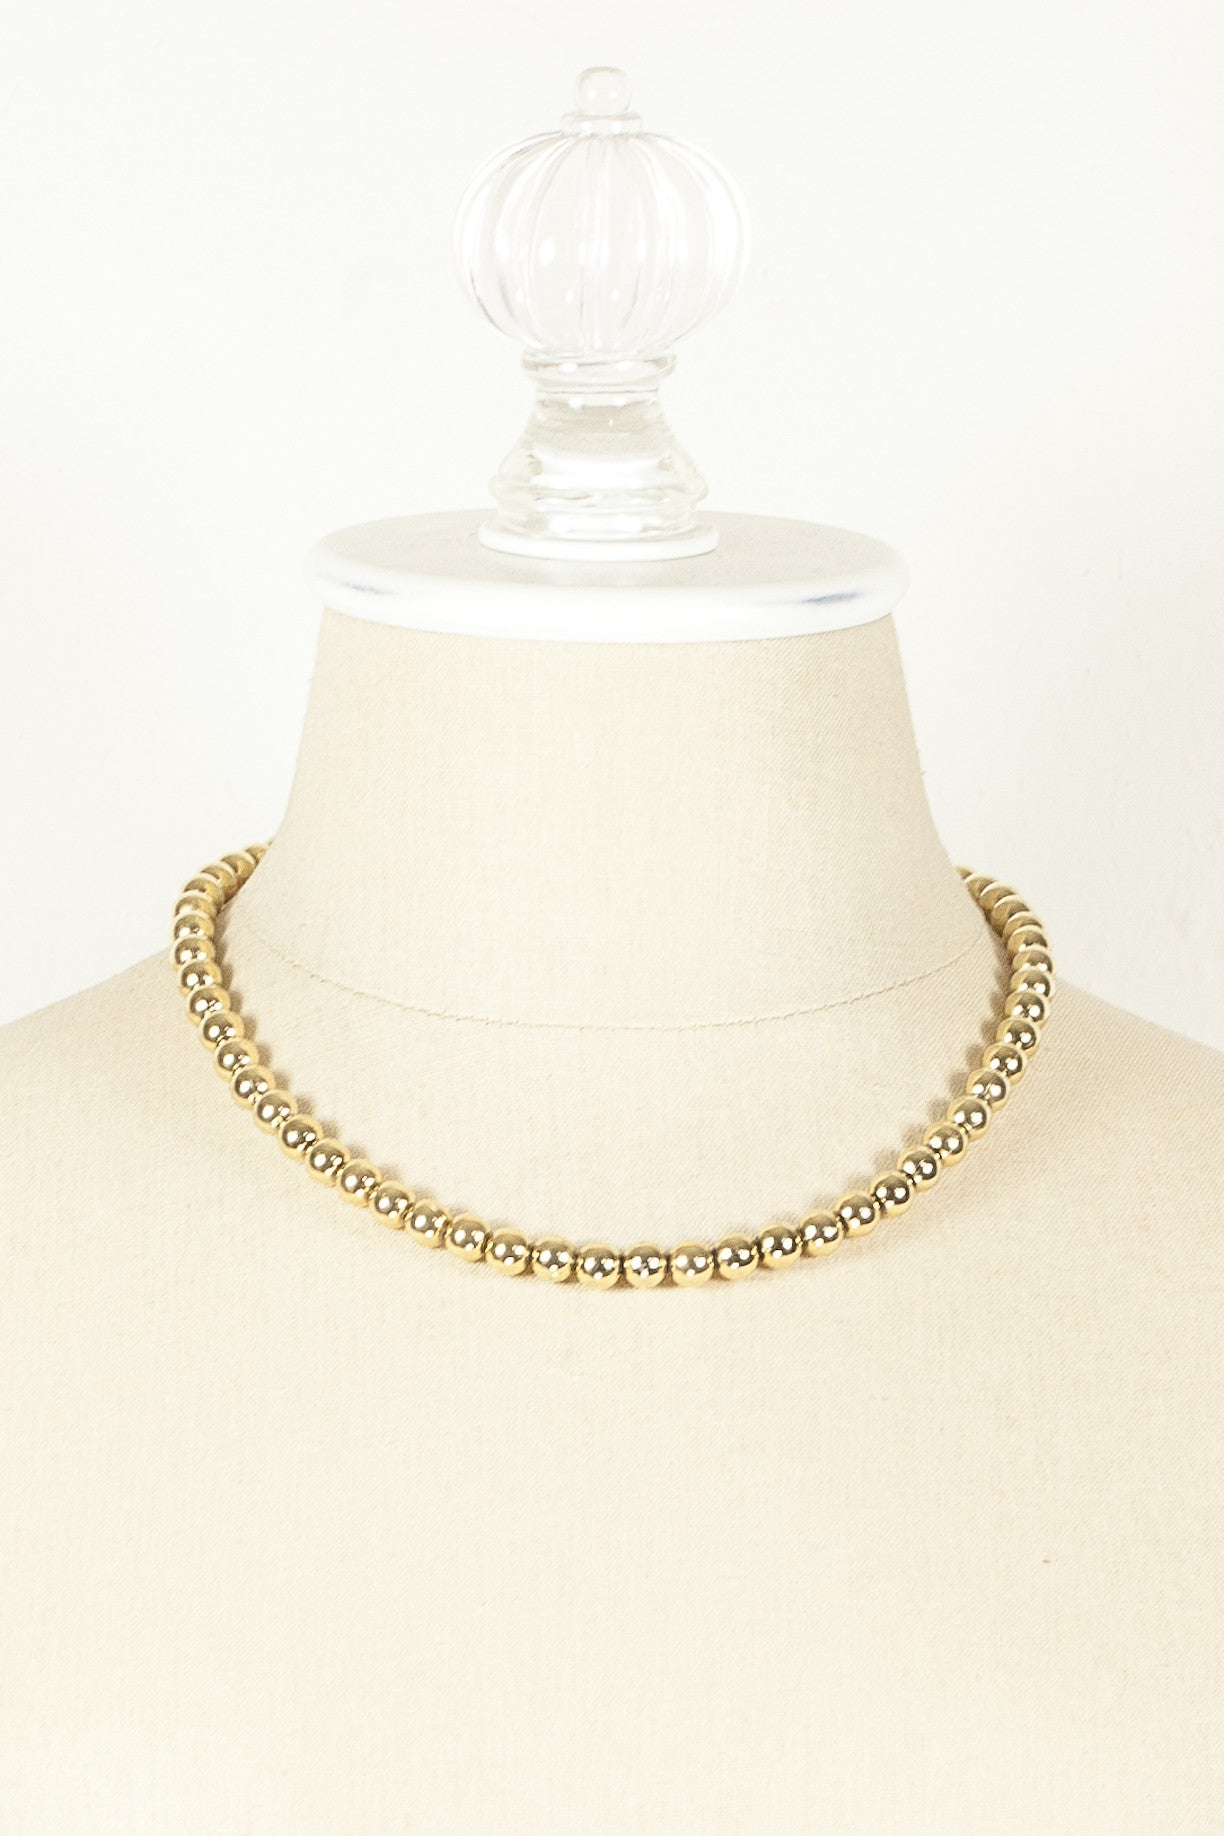 70's__Napier__Classic Gold Ball Necklace